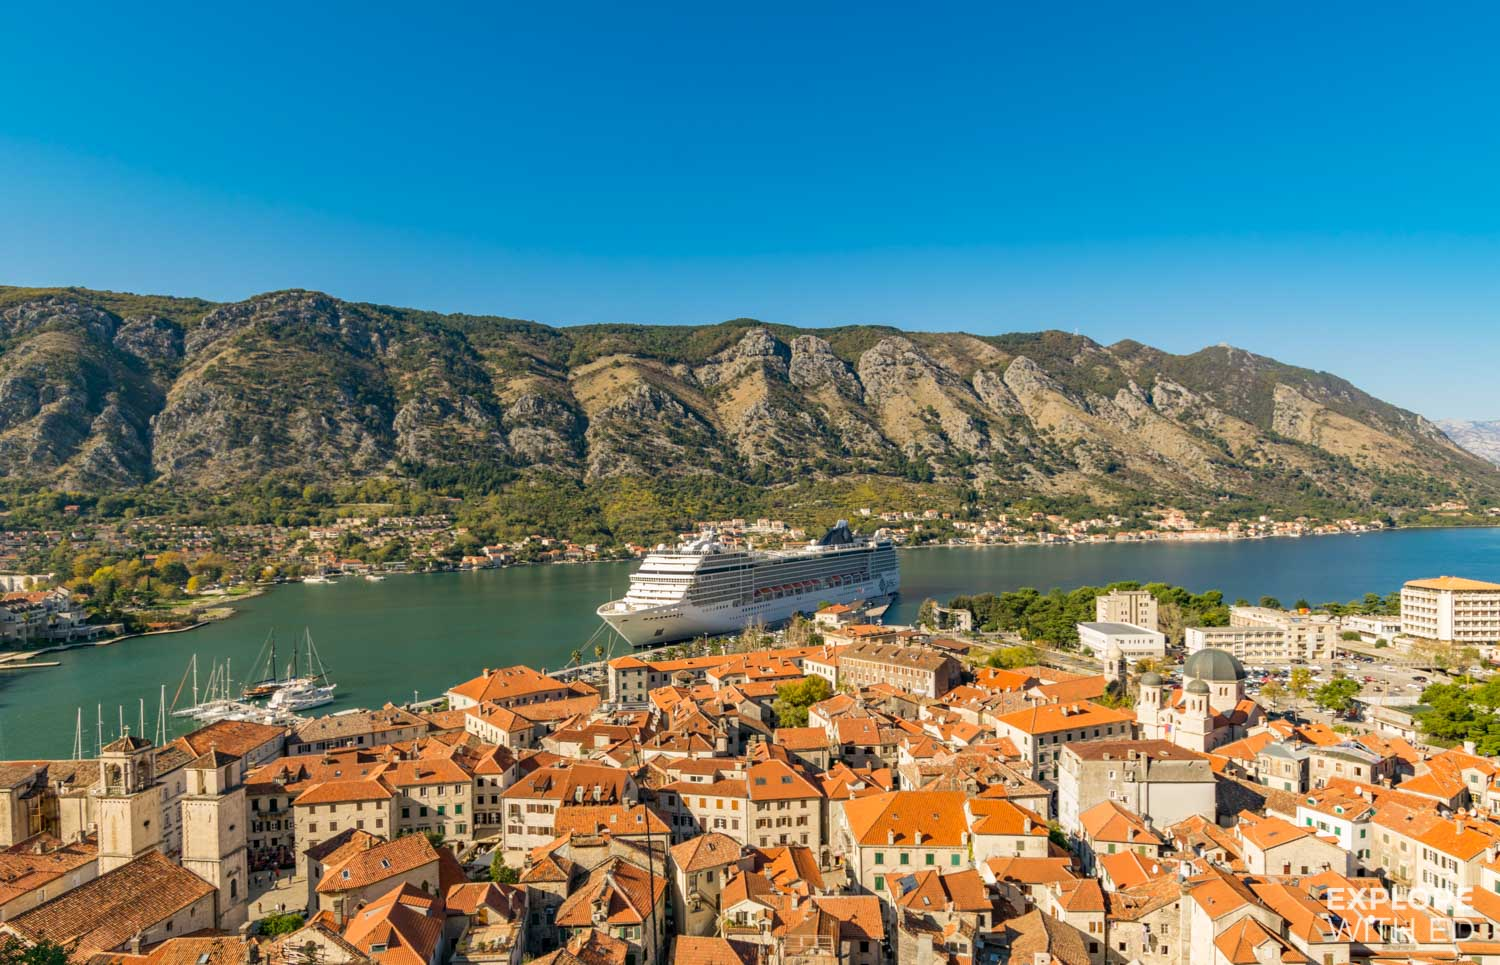 MSC Musica cruise ship in Kotor Montenegro